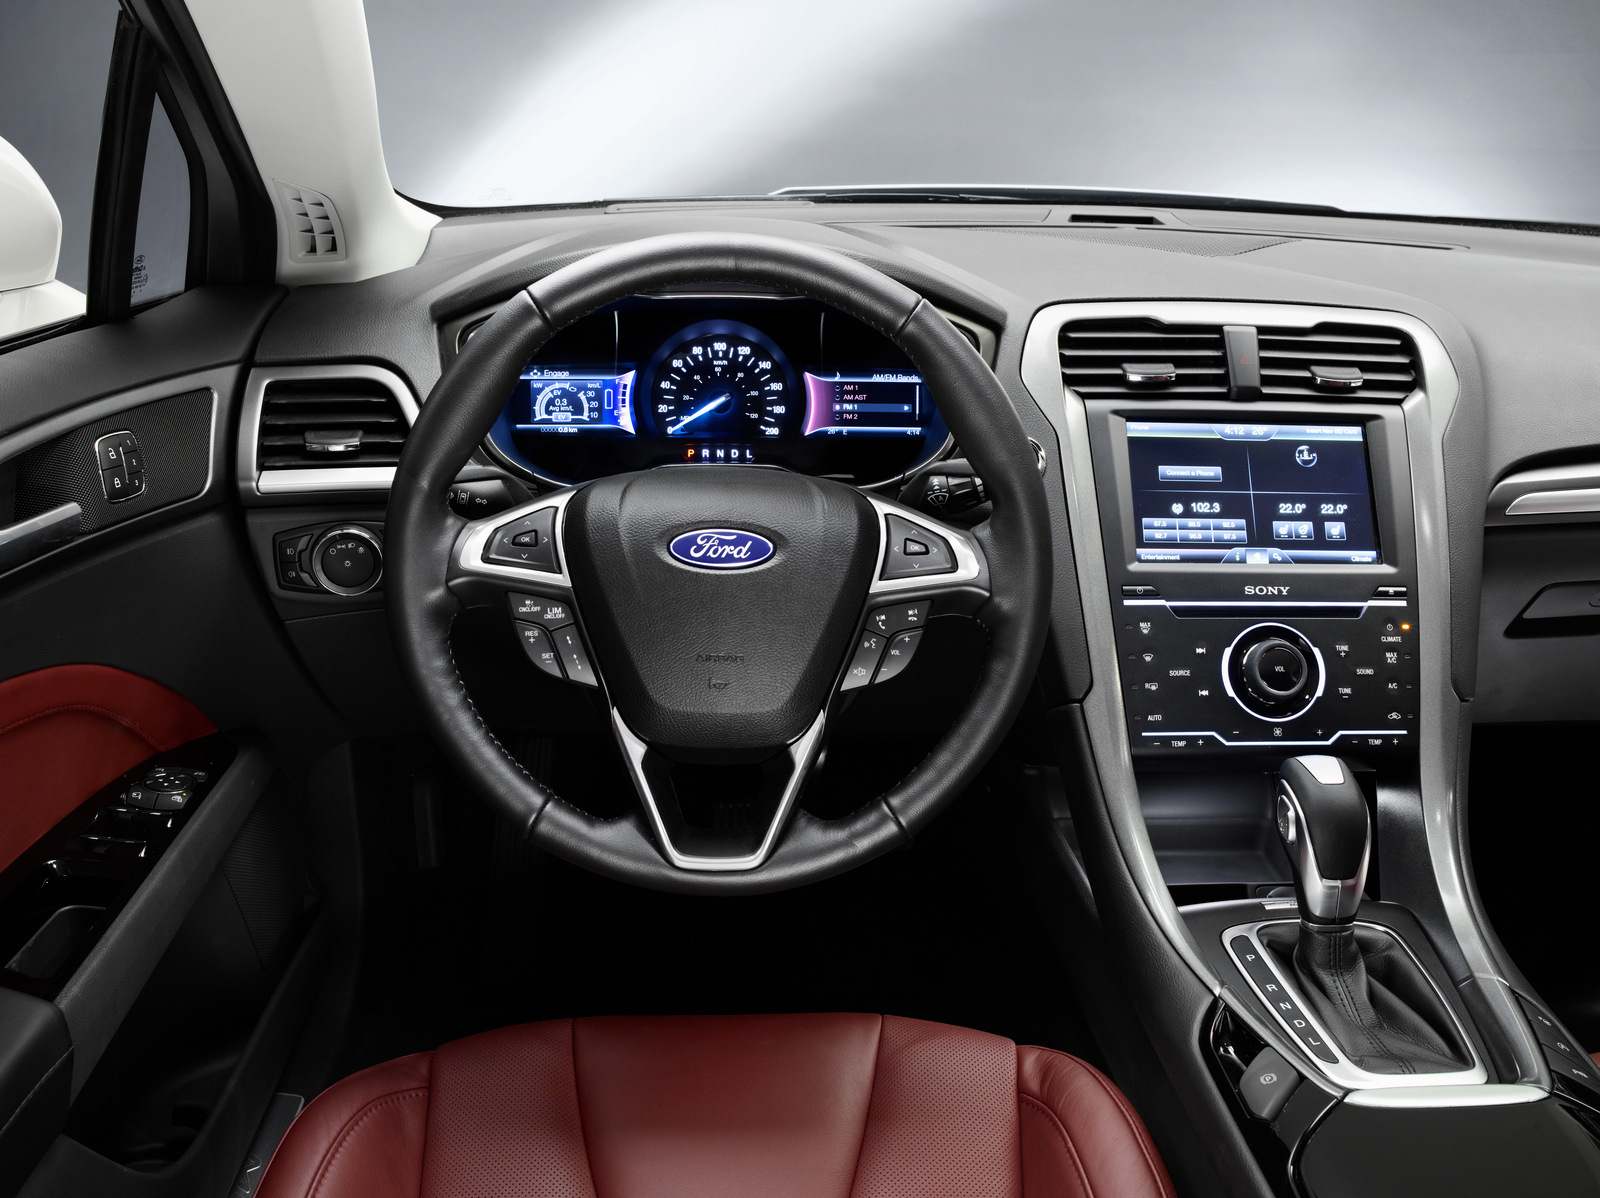 Ford Fusion Ecoboost Interior on 2013 Ford Fiesta Se